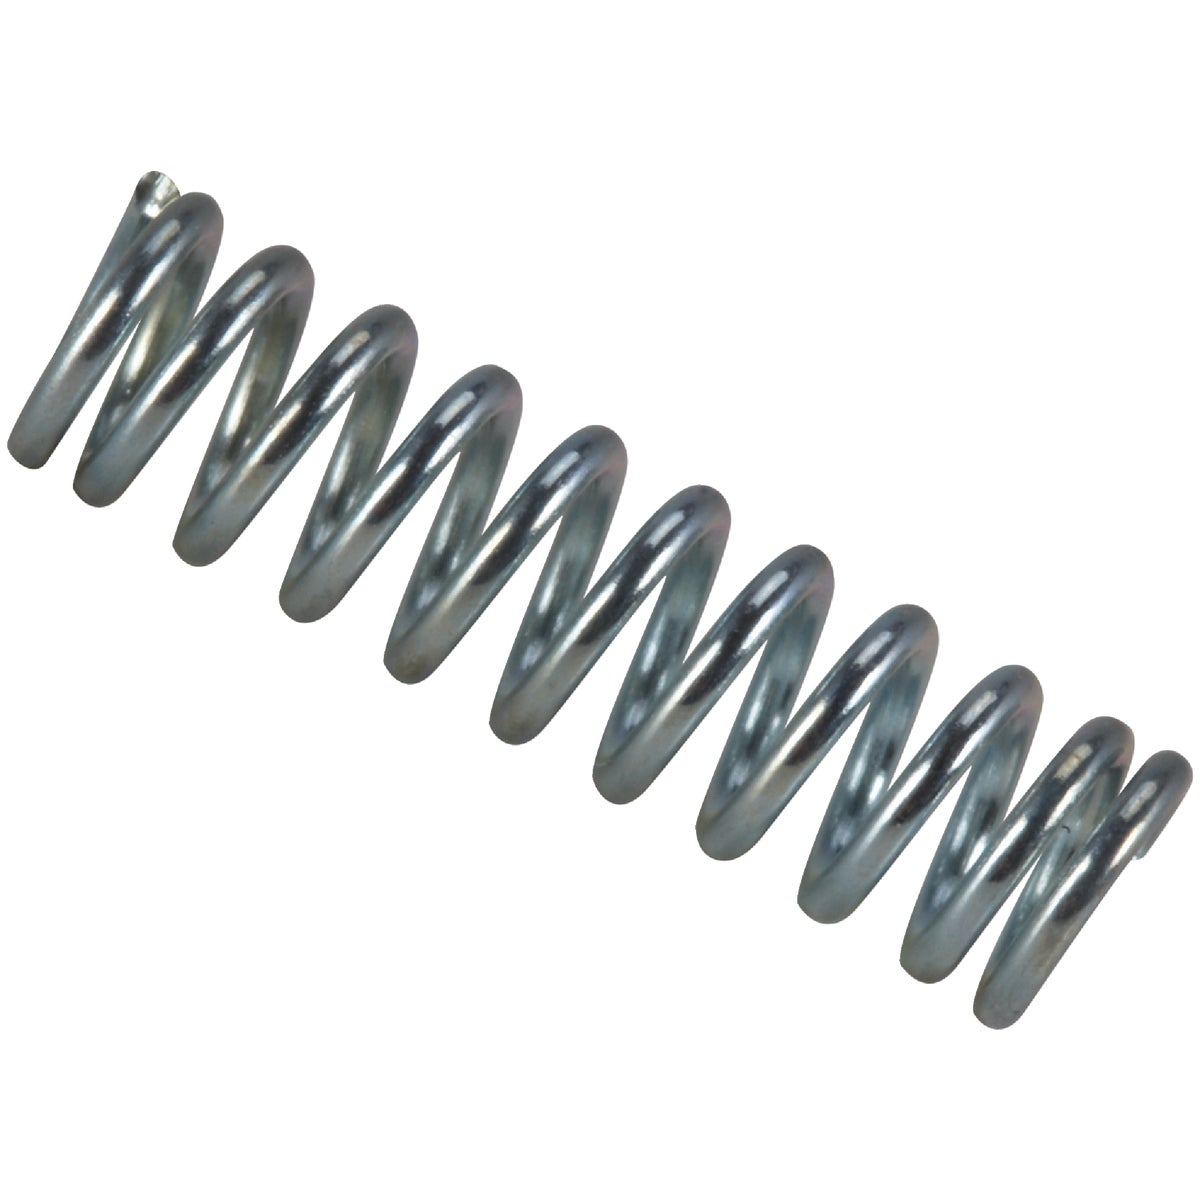 COMPRESSION SPRING - C-814 by Century Spring Corp